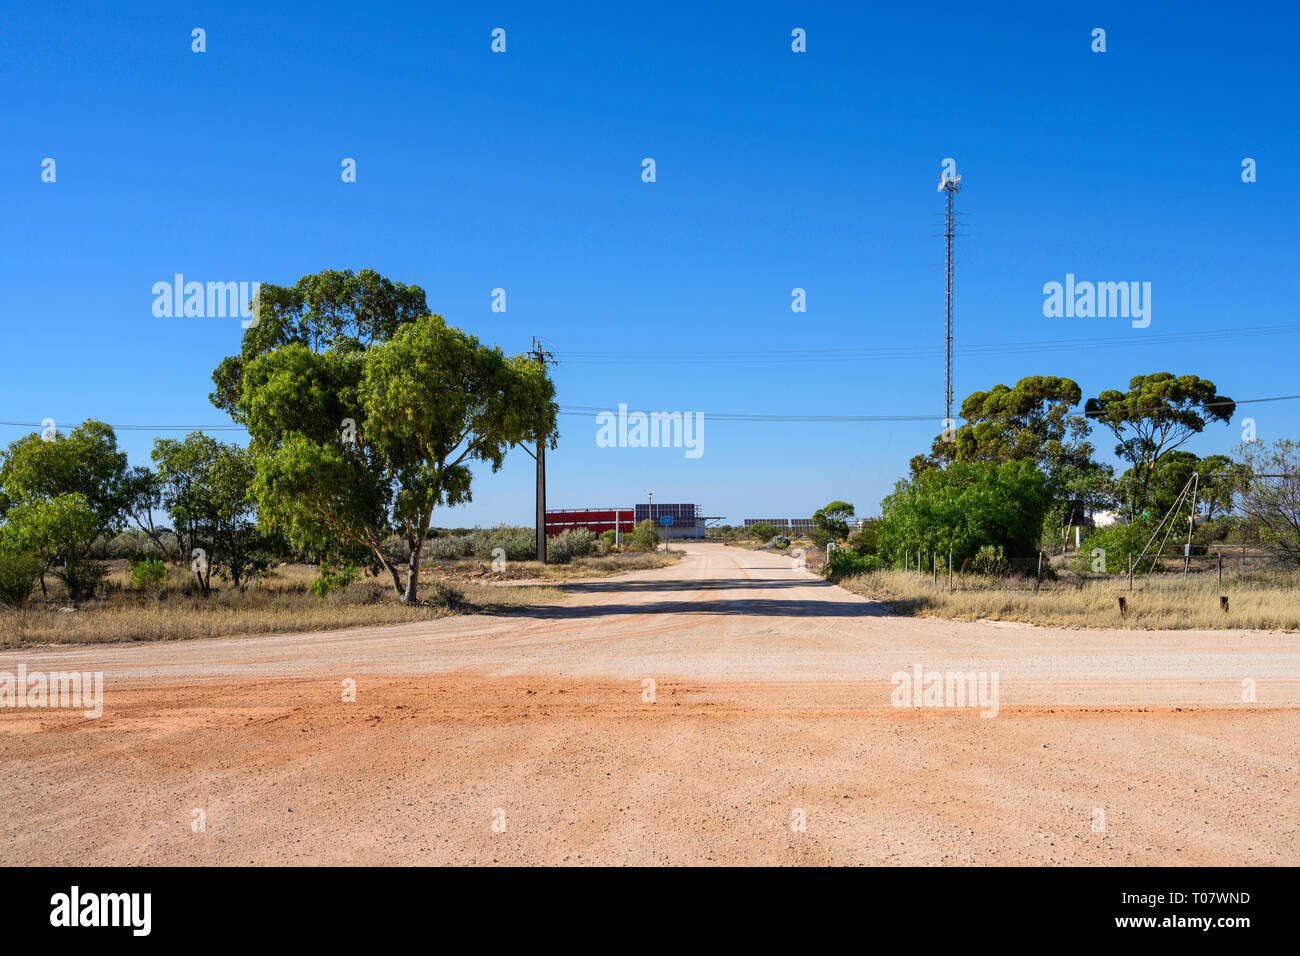 Airfield mast at the remote locality of Rawlinna, in the Nullarbor plain in Western Austrailia. Stock Photo